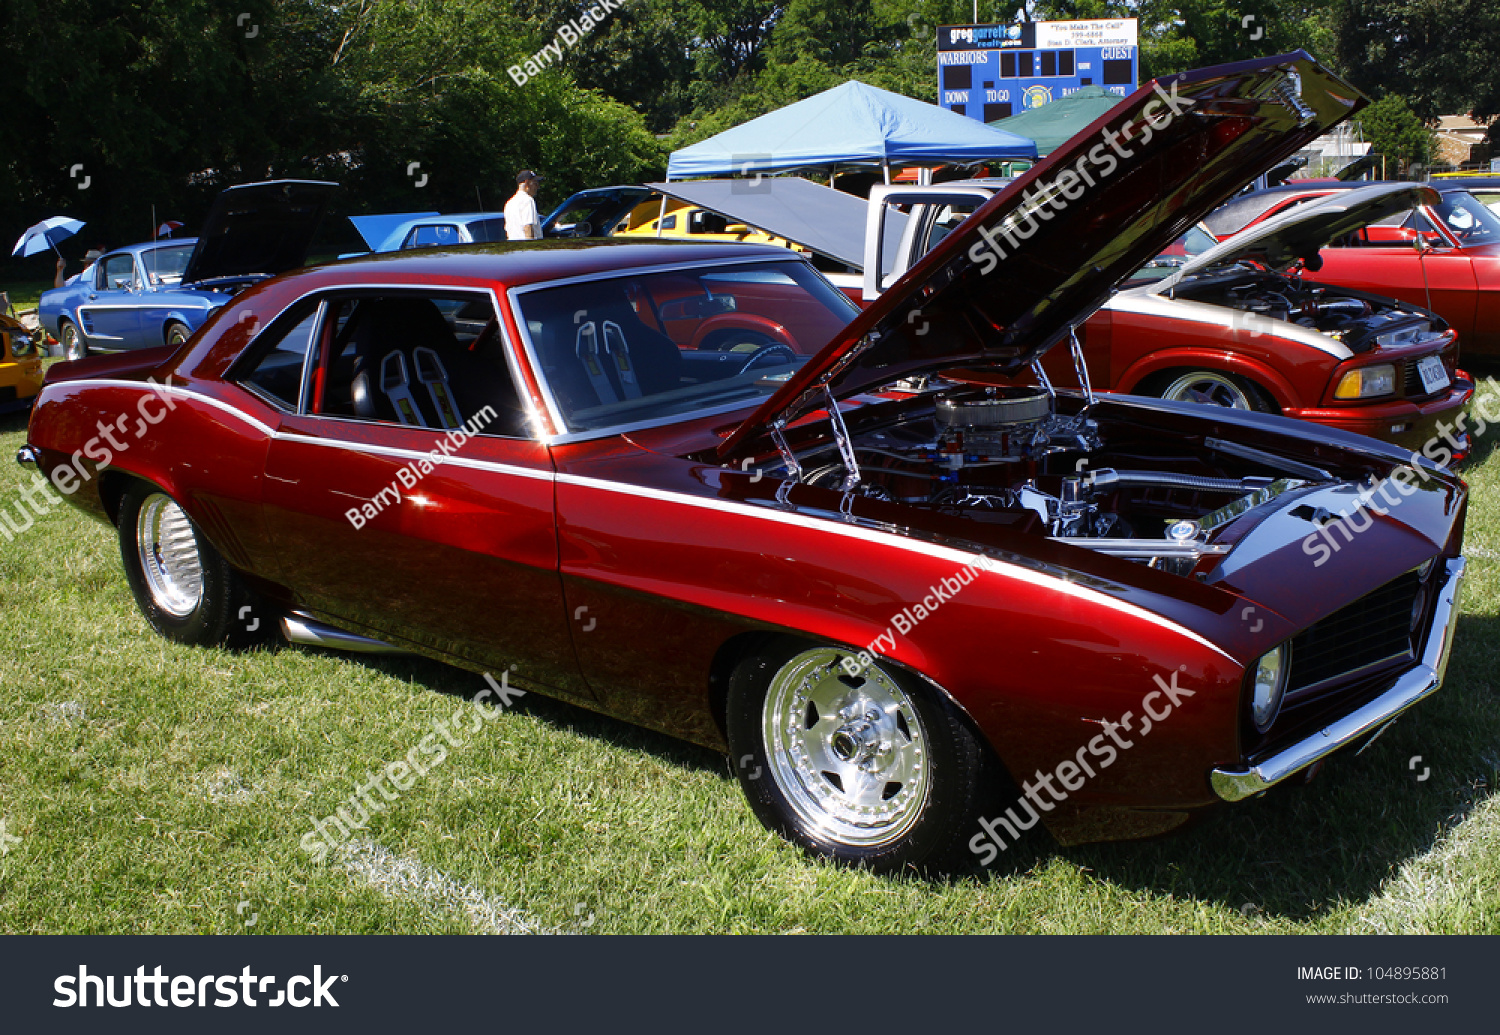 HAMPTON VAJUNE A Chevy Camaro Stock Photo Royalty Free - Camaro car show near me